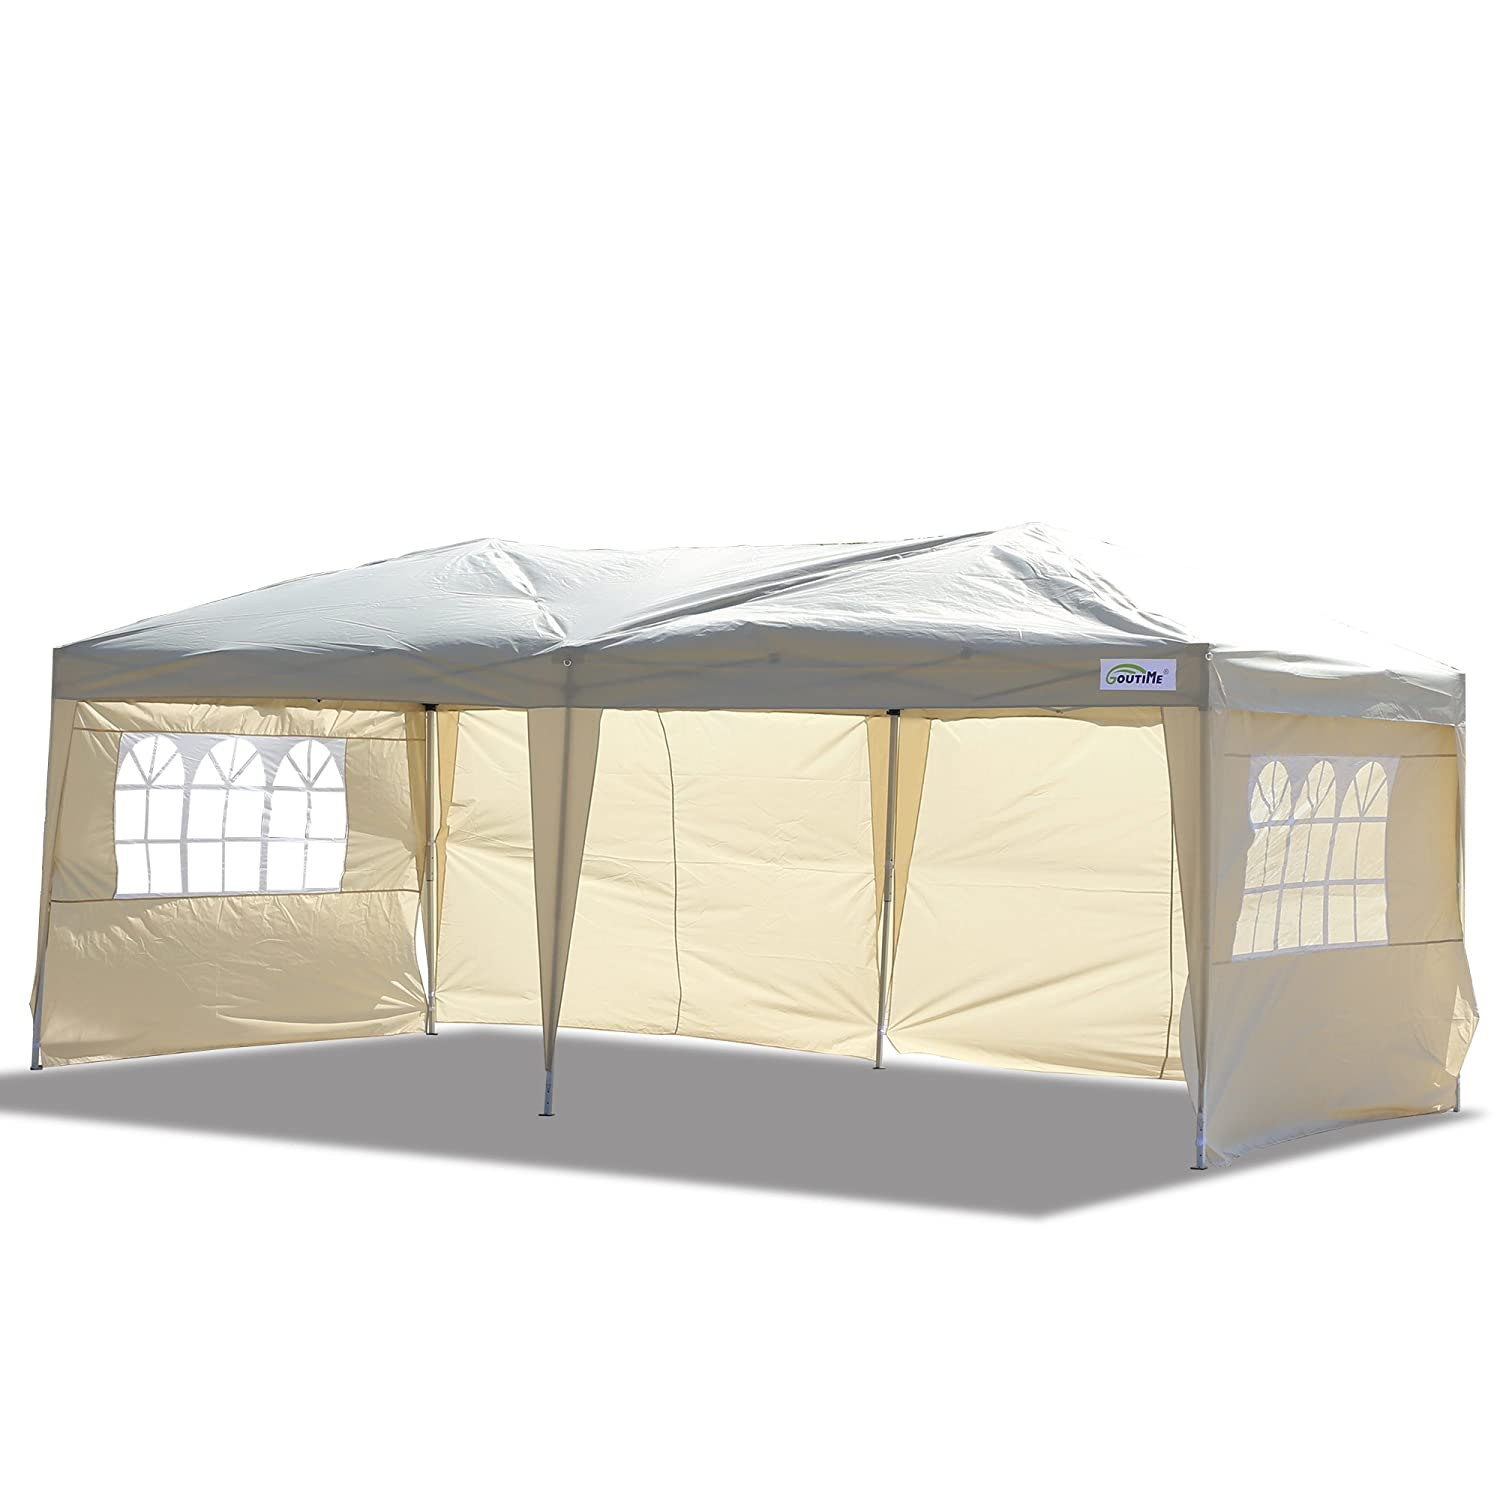 Goutime 10x20 Ft Ez Pop Up Canopy Tent with 4Pcs 10Ft Removable Sidewalls and Wheeled Bag for Outdoor Party Events Uscanopy